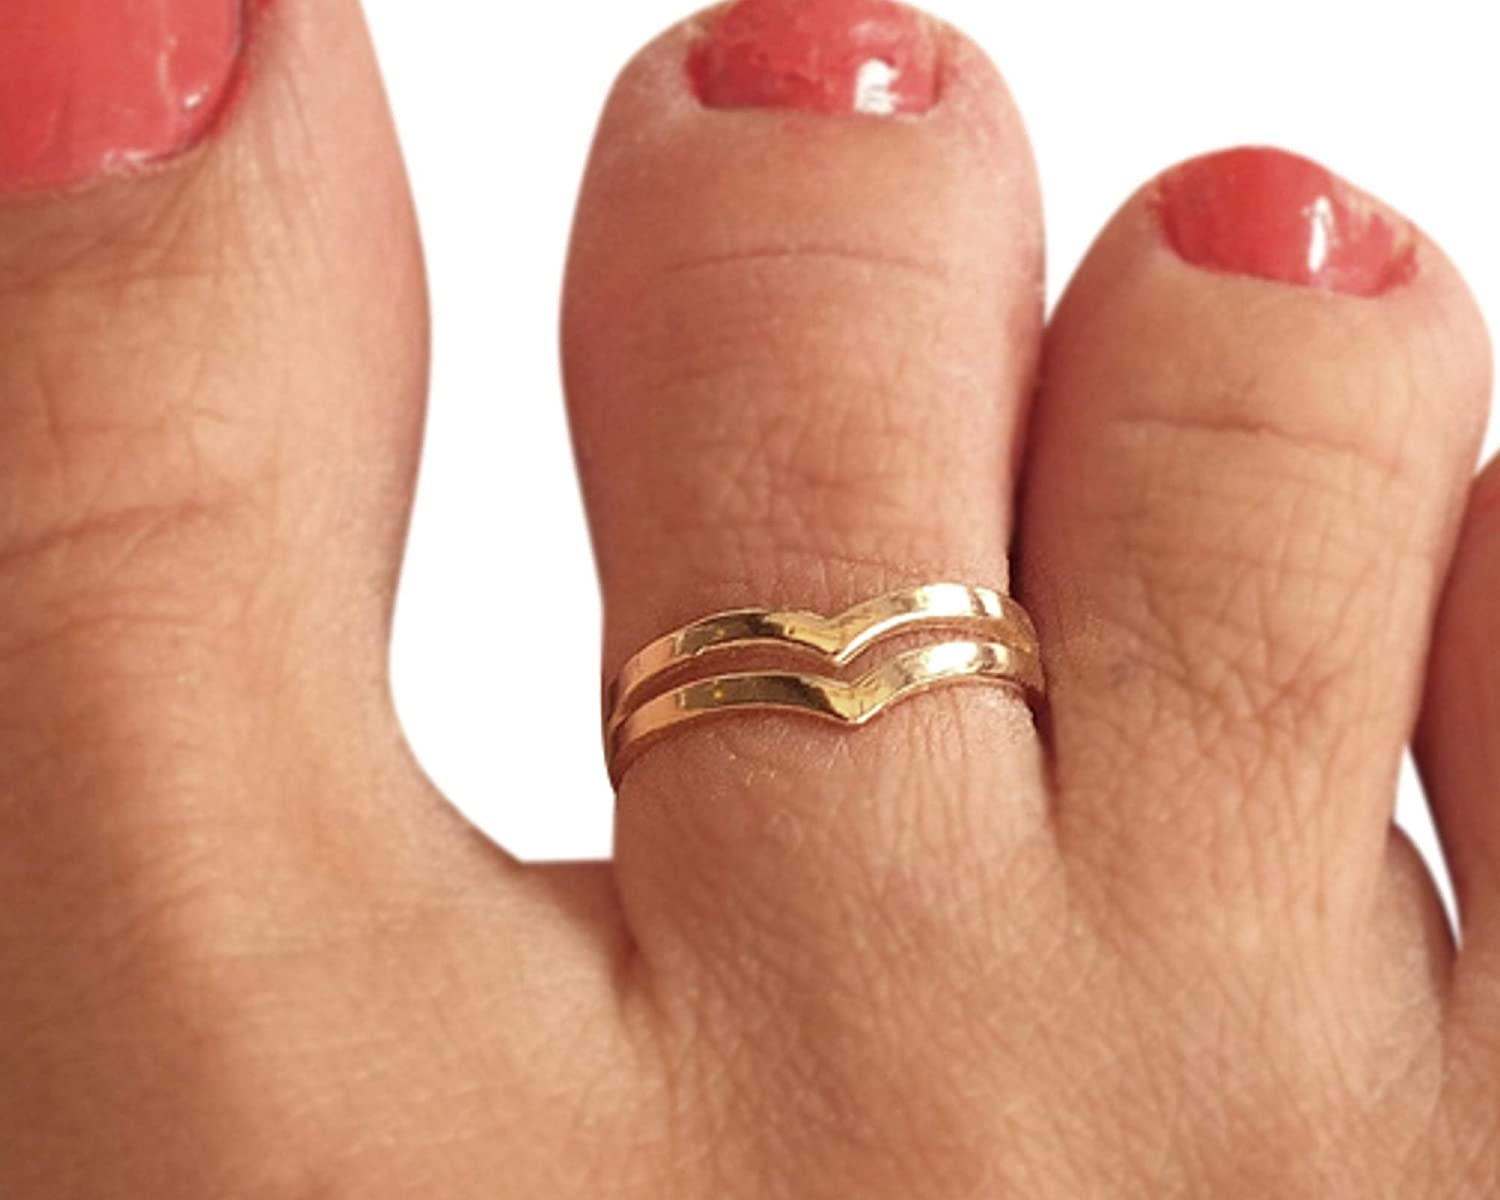 Sterling Silver Toe Ring Birthday Gift Jewelry Adjustable Toe Ring Toe Rings For Women Double Chevron Toe Ring Set Gift For Her